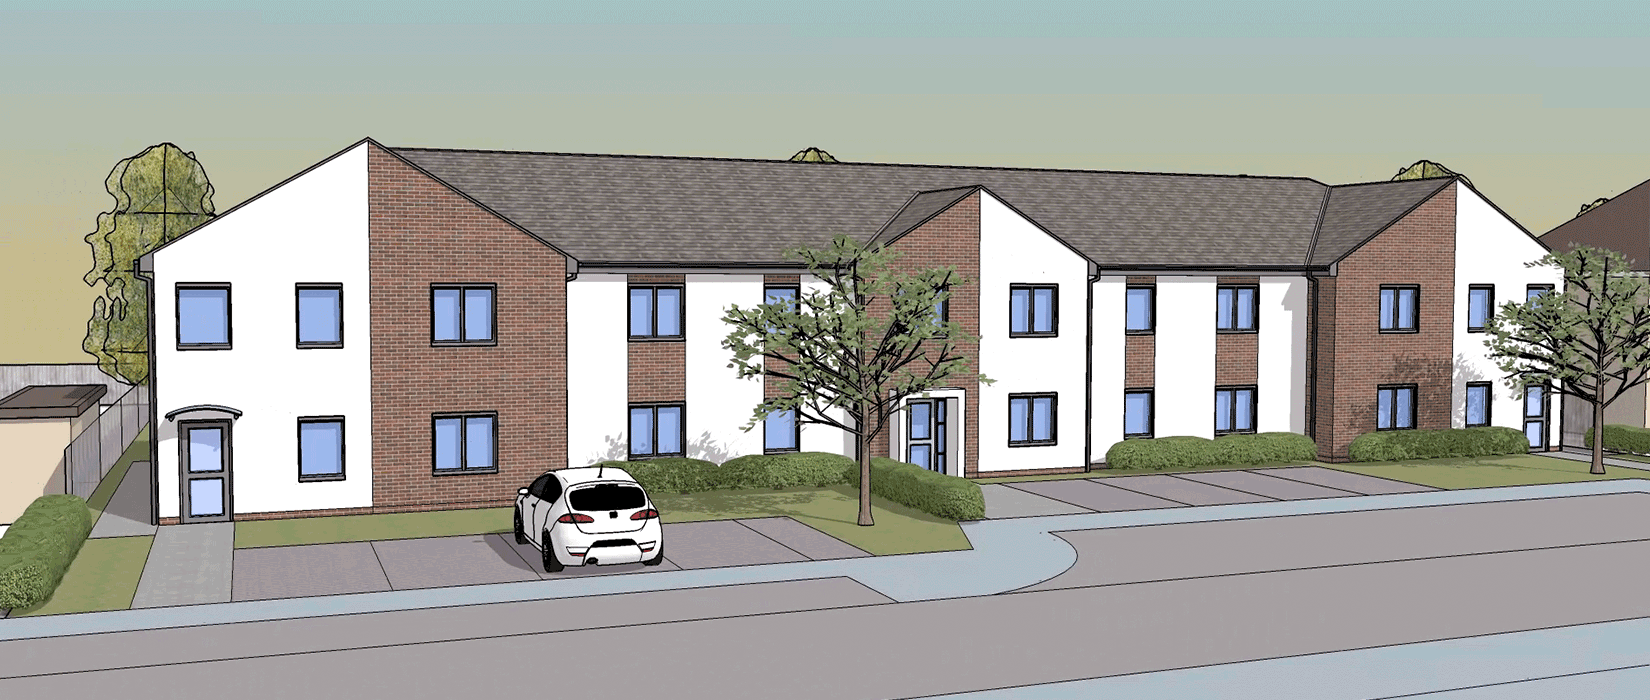 Our new supported living development in Wolverhampton - Barnard Road